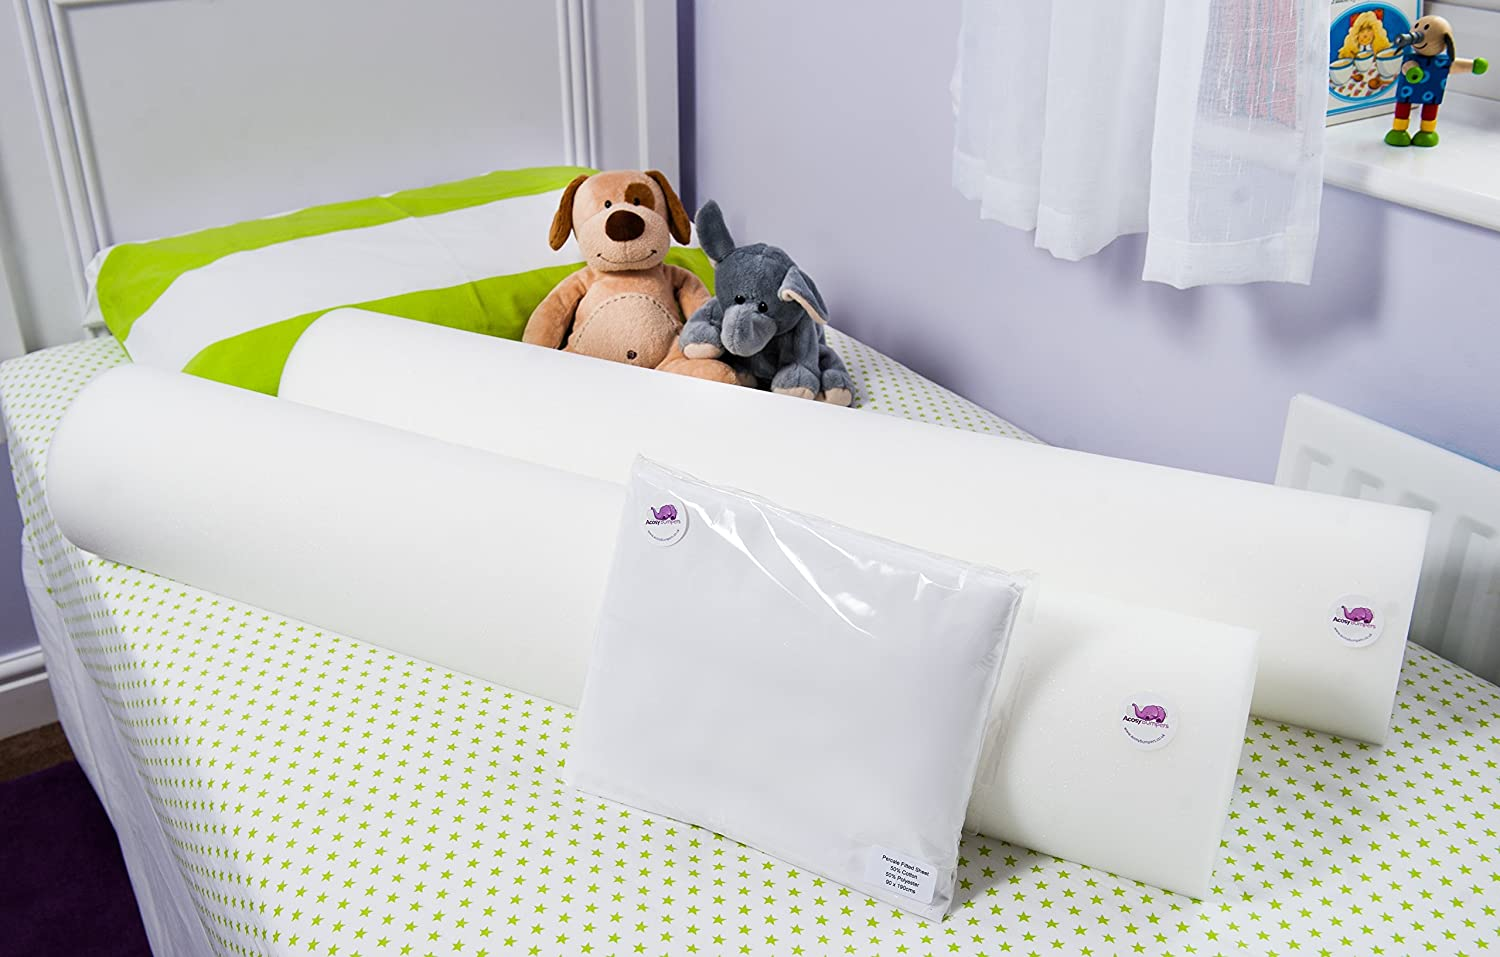 The Big Bed Tadpole Pack - 2 x 100% British NURSERY GRADE cot safe foam bed guard bumpers & Percale sheet Acosy Bumpers Ltd BBTP